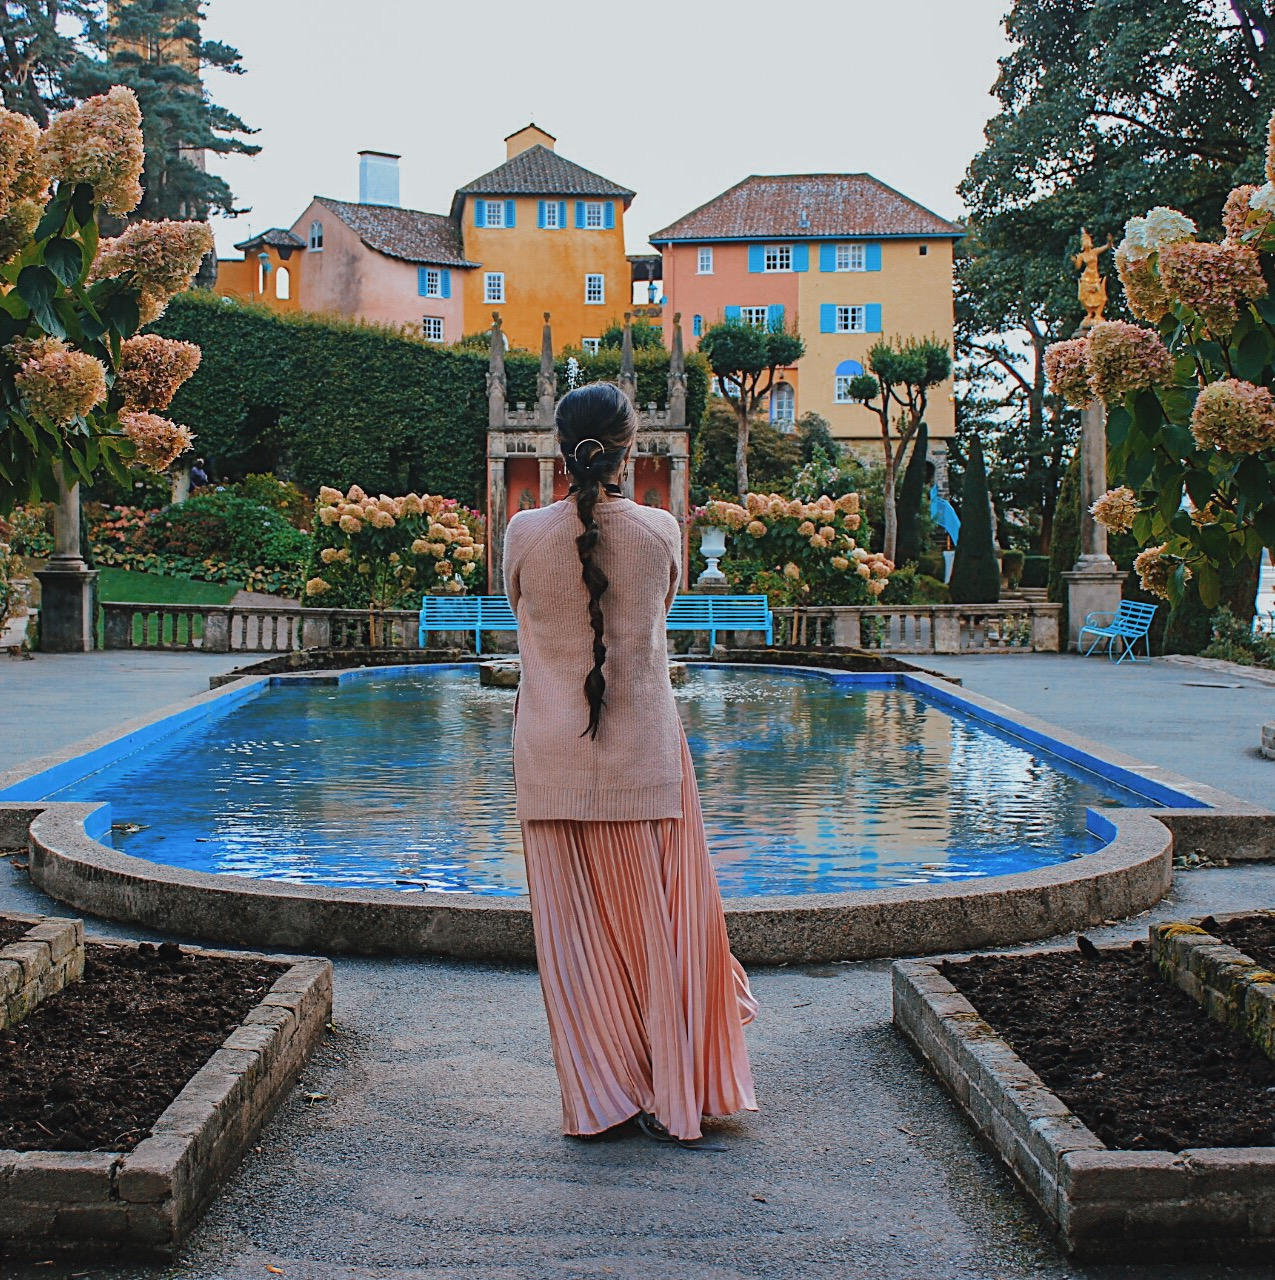 portmeirion wales, seaside places to visit uk, most beautiful village uk, must visit place uk, colourful village uk, indian blogger, london blog, uk travel blogger, all pink look, pink pleated skirt, pale pink outfit, millenial pink outfit, valentines day outfit, long hair styles